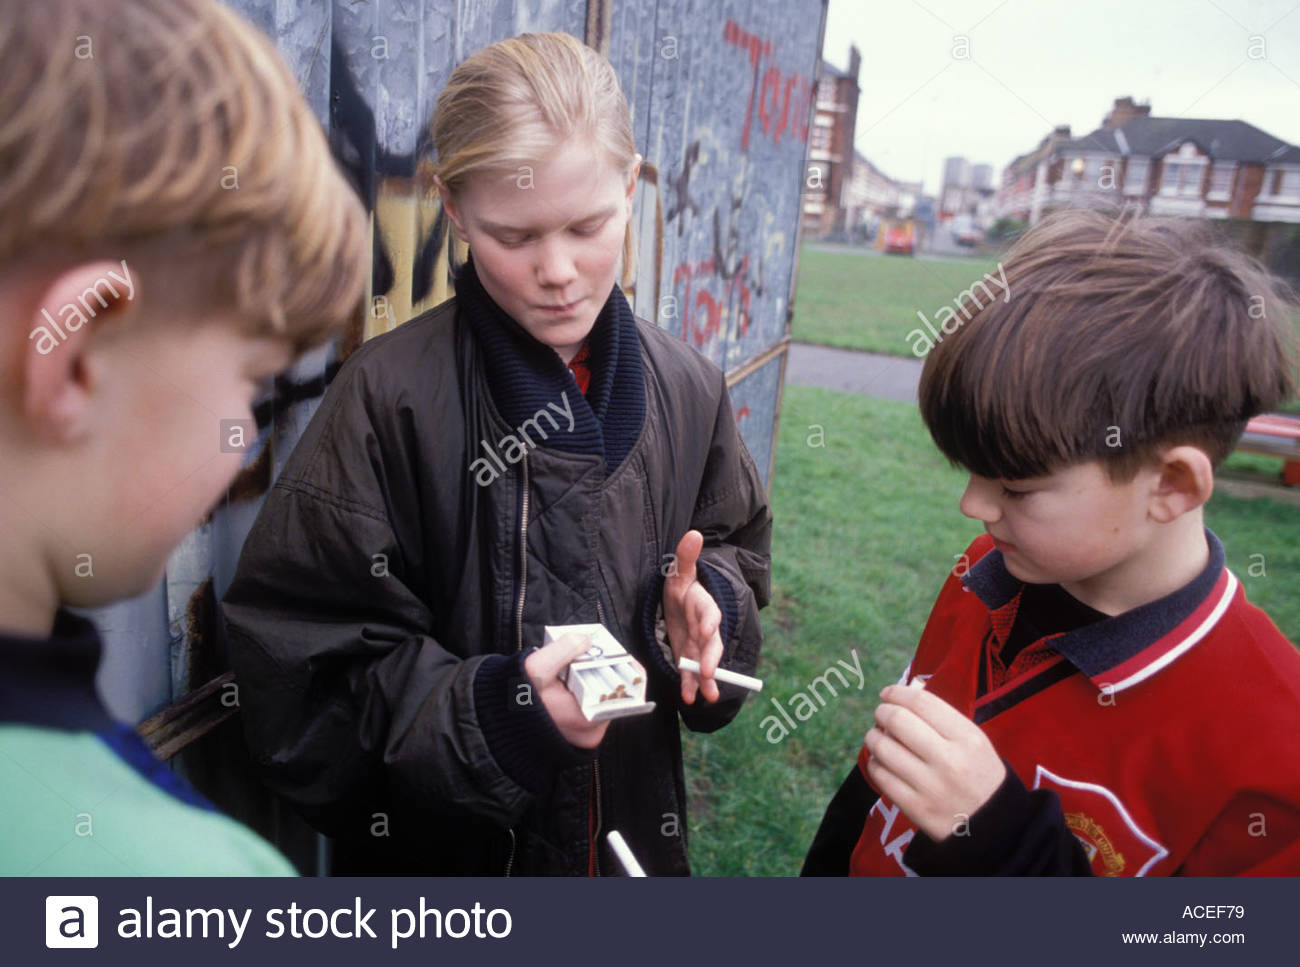 Kids smoking cigarettes recommend you